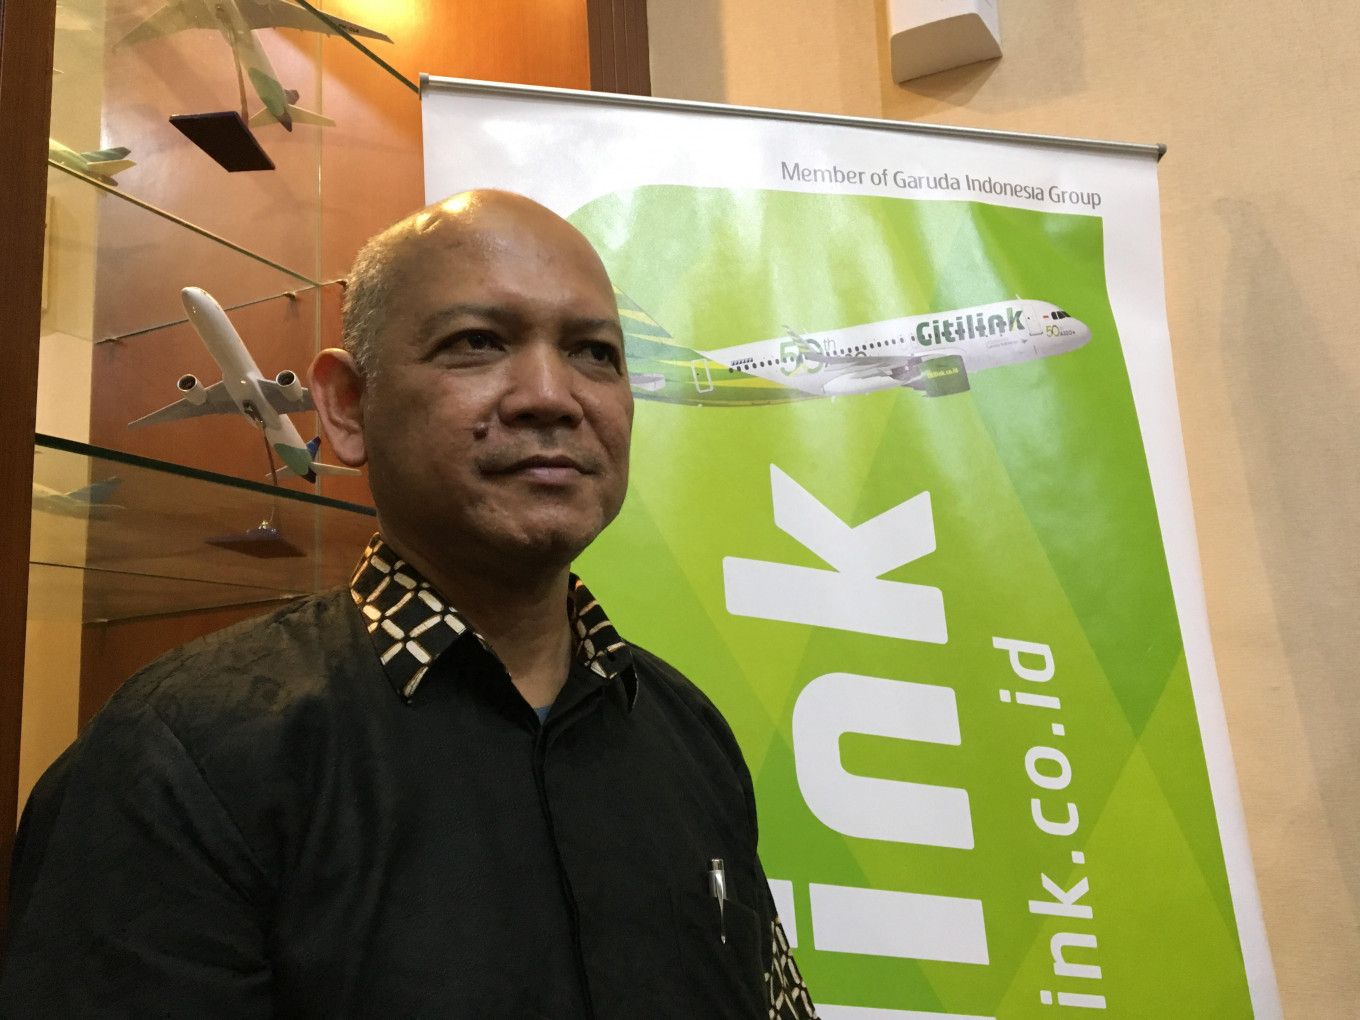 With short ribs 'balado' and 'rendang', Citilink aims to boost ancillary revenue